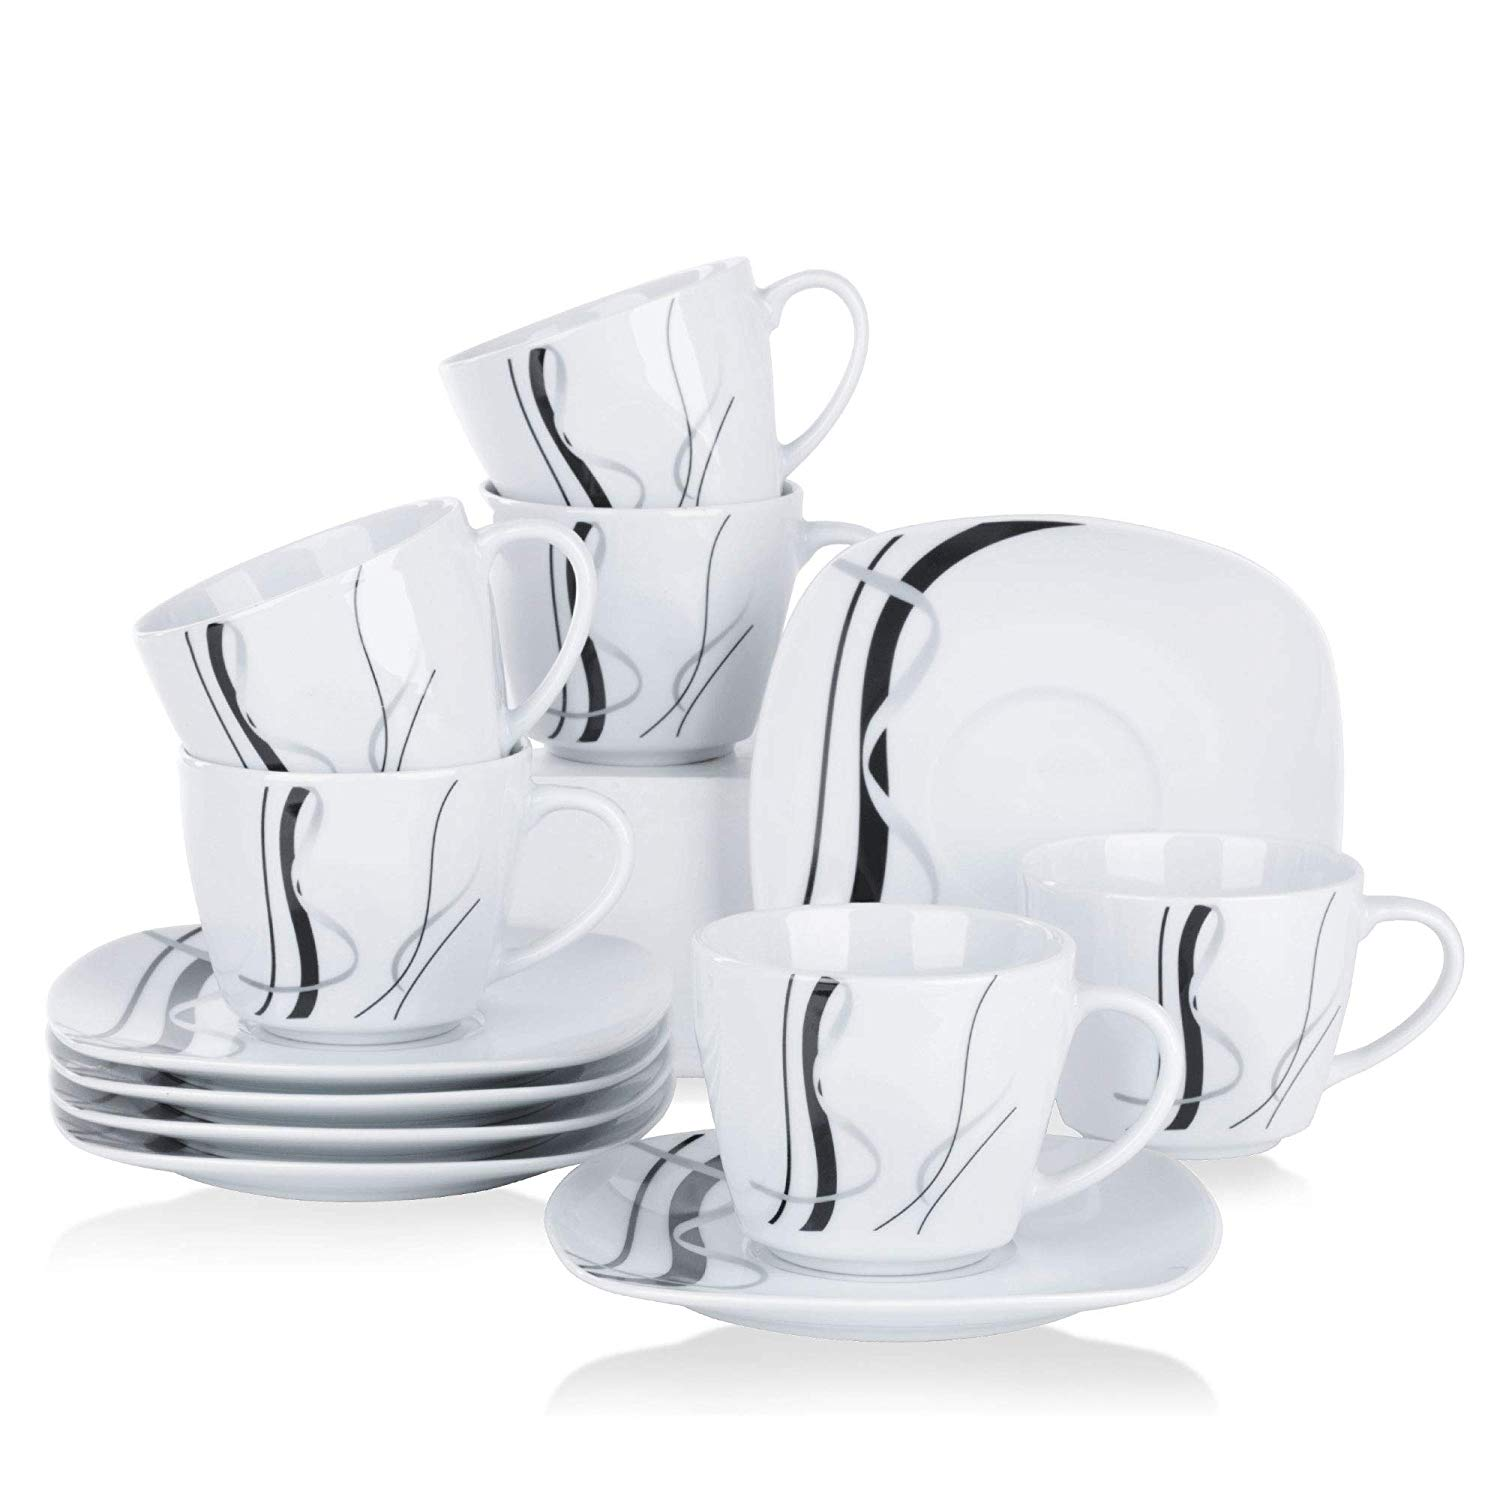 VEWEET FIONA 12-Piece 220ml White Porcelain Drinkware Espresso <font><b>Coffee</b></font> <font><b>Cups</b></font> and Saucers <font><b>Set</b></font> Kitchen Family Office <font><b>Coffee</b></font> <font><b>Cup</b></font> <font><b>Set</b></font> image